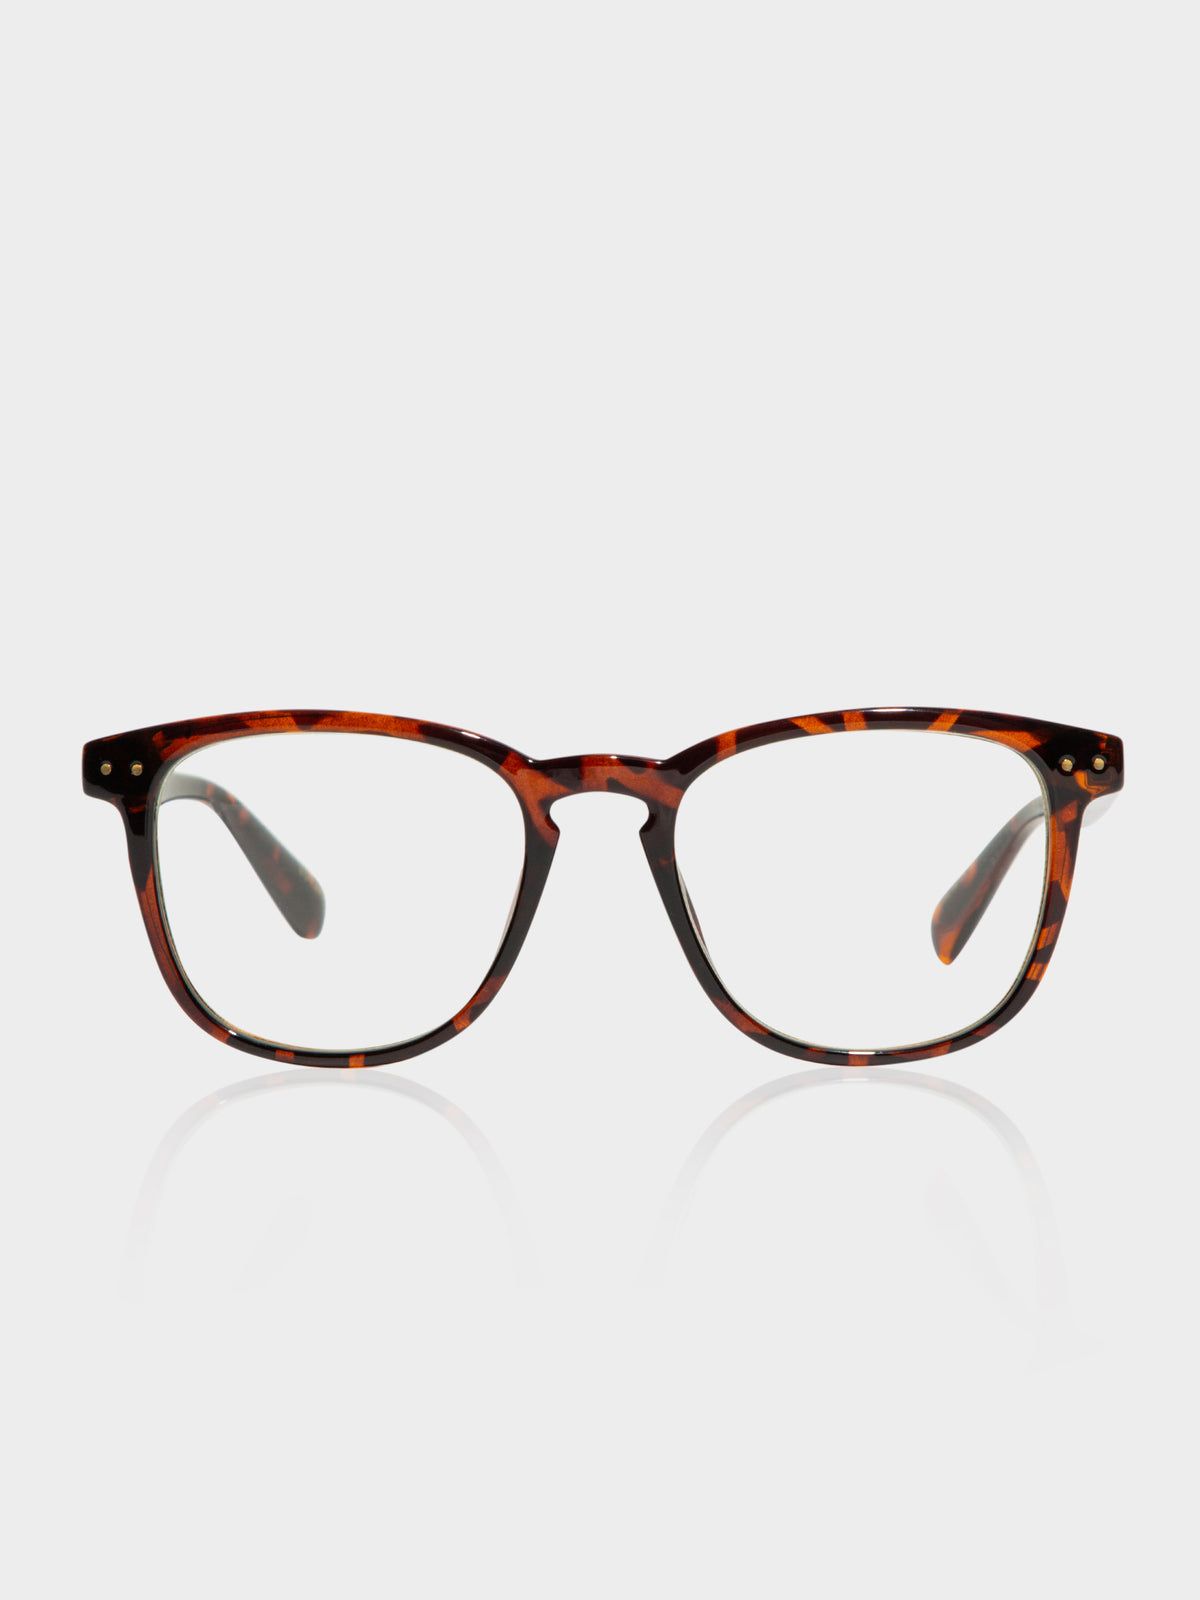 City TLP27 Polished Tortoiseshell Glasses in Clear